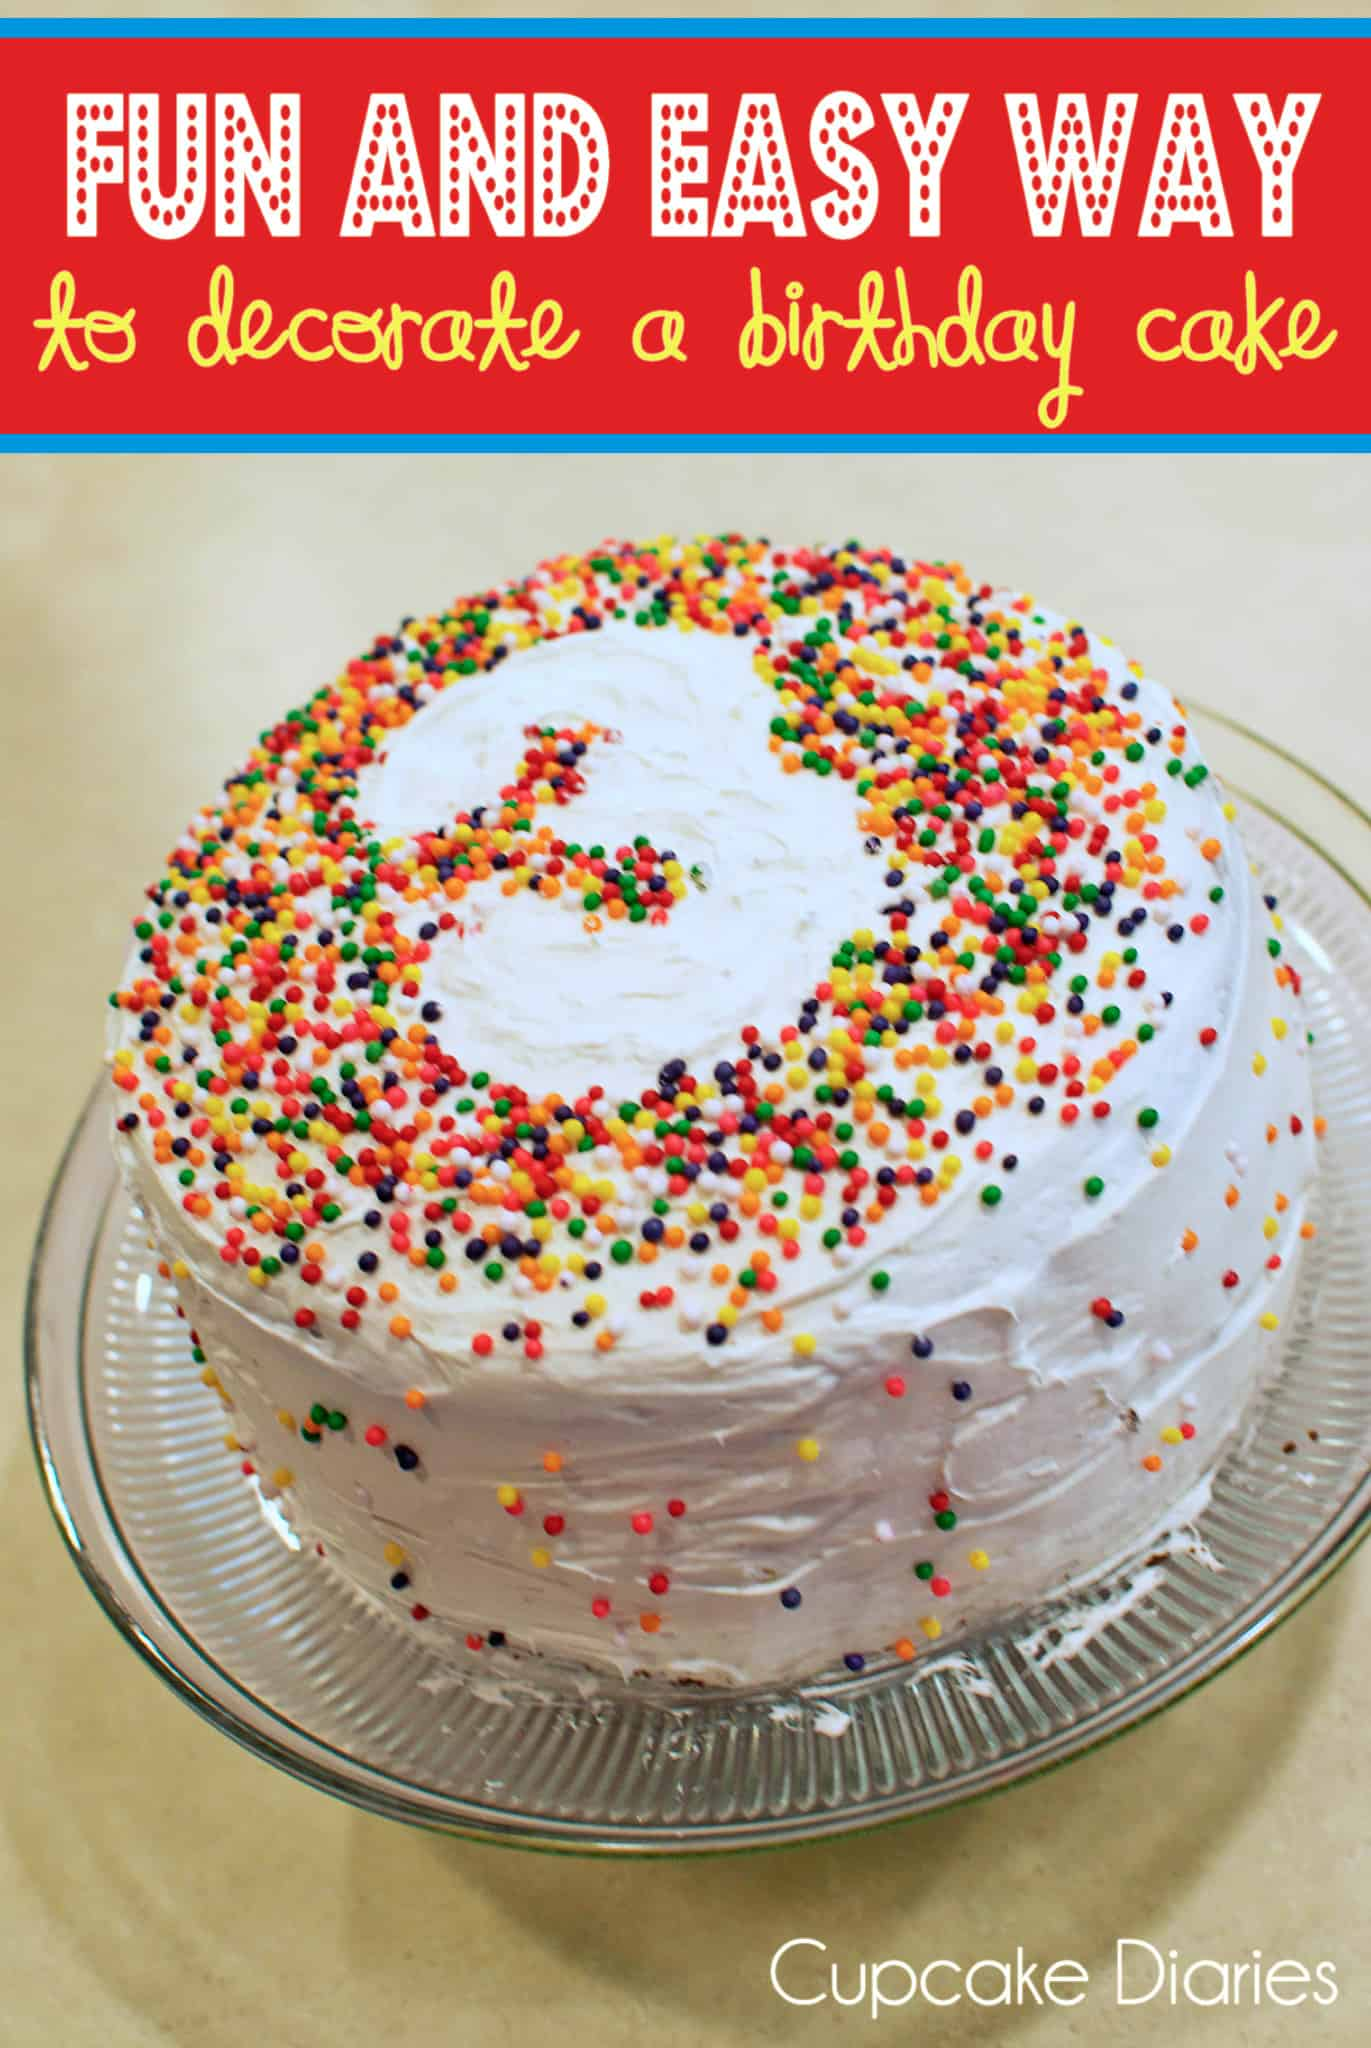 Fun and Easy Way to Decorate a Birthday Cake - Cupcake Diaries